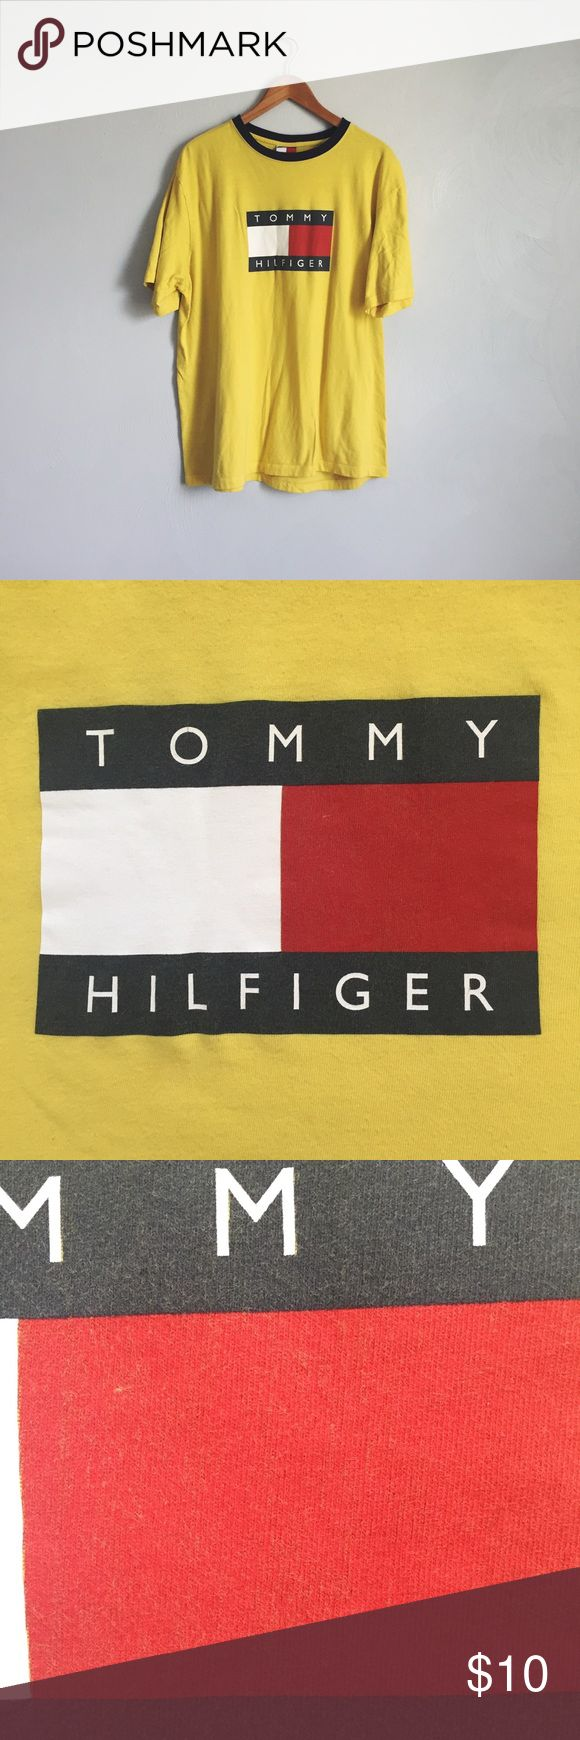 Tommy Hilfiger vintage yellow logo tee The 90's are back! Size medium in men's sizing so fits like a large for women. The logo graphic and the fabric is starting to get a bit fuzzy as shown in the close-up shots but otherwise no other flaws. Tommy Hilfiger Tops